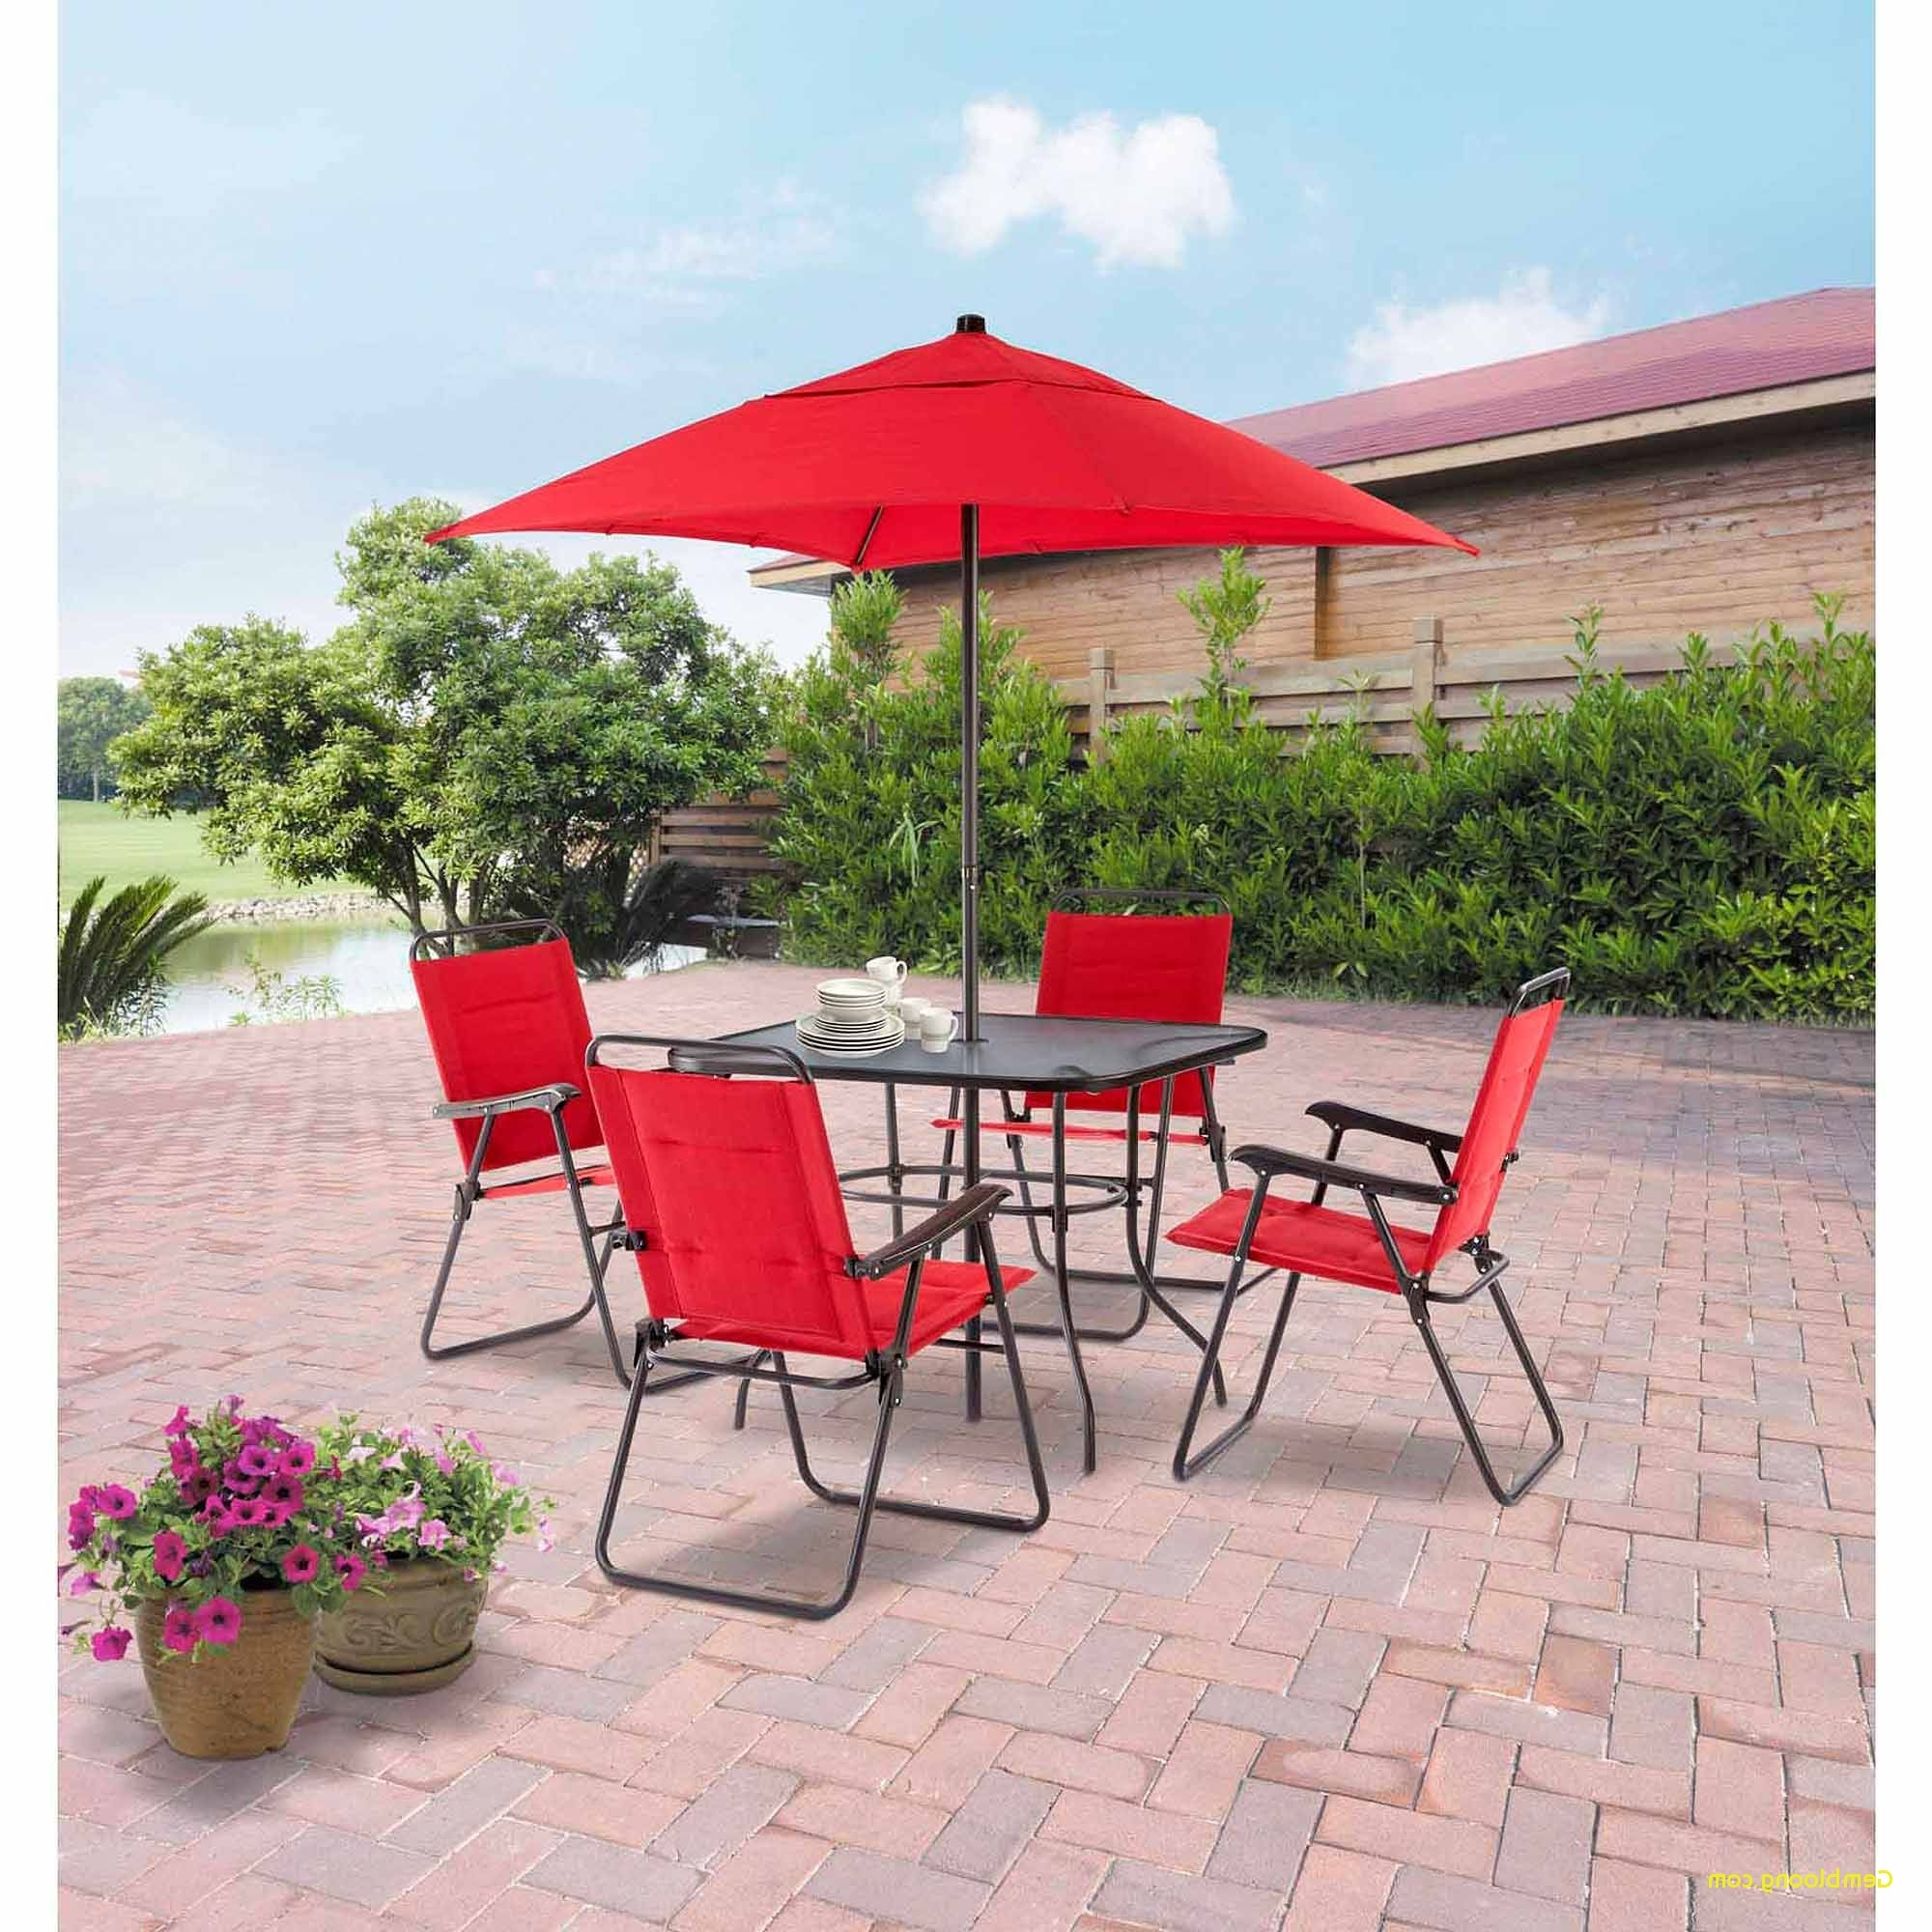 Patio Conversation Sets At Walmart For Latest New Walmart Wicker Patio Furniture Sets (View 13 of 20)